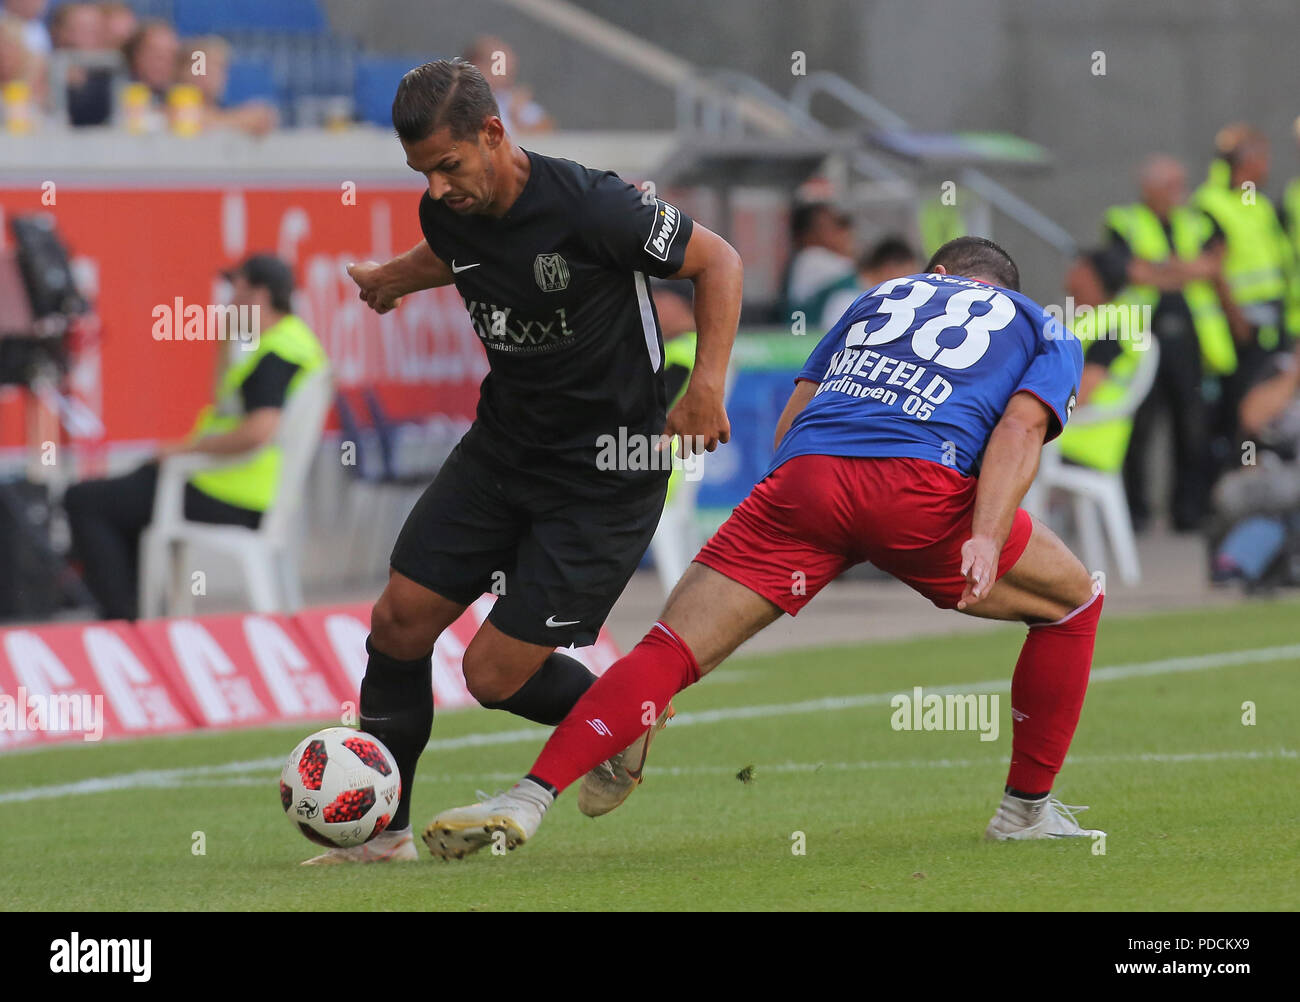 Duisburg, Germany. 08th Aug, 2018. Duisburg, Germany August 8 2018, 3rd league matchday 3, KFC Uerdingen 05 vs SV Meppen: Luka Tankulic (SVM), Oguzhan Kefkir (KFC) in competition. Credit: Juergen Schwarz/Alamy Live News - Stock Image